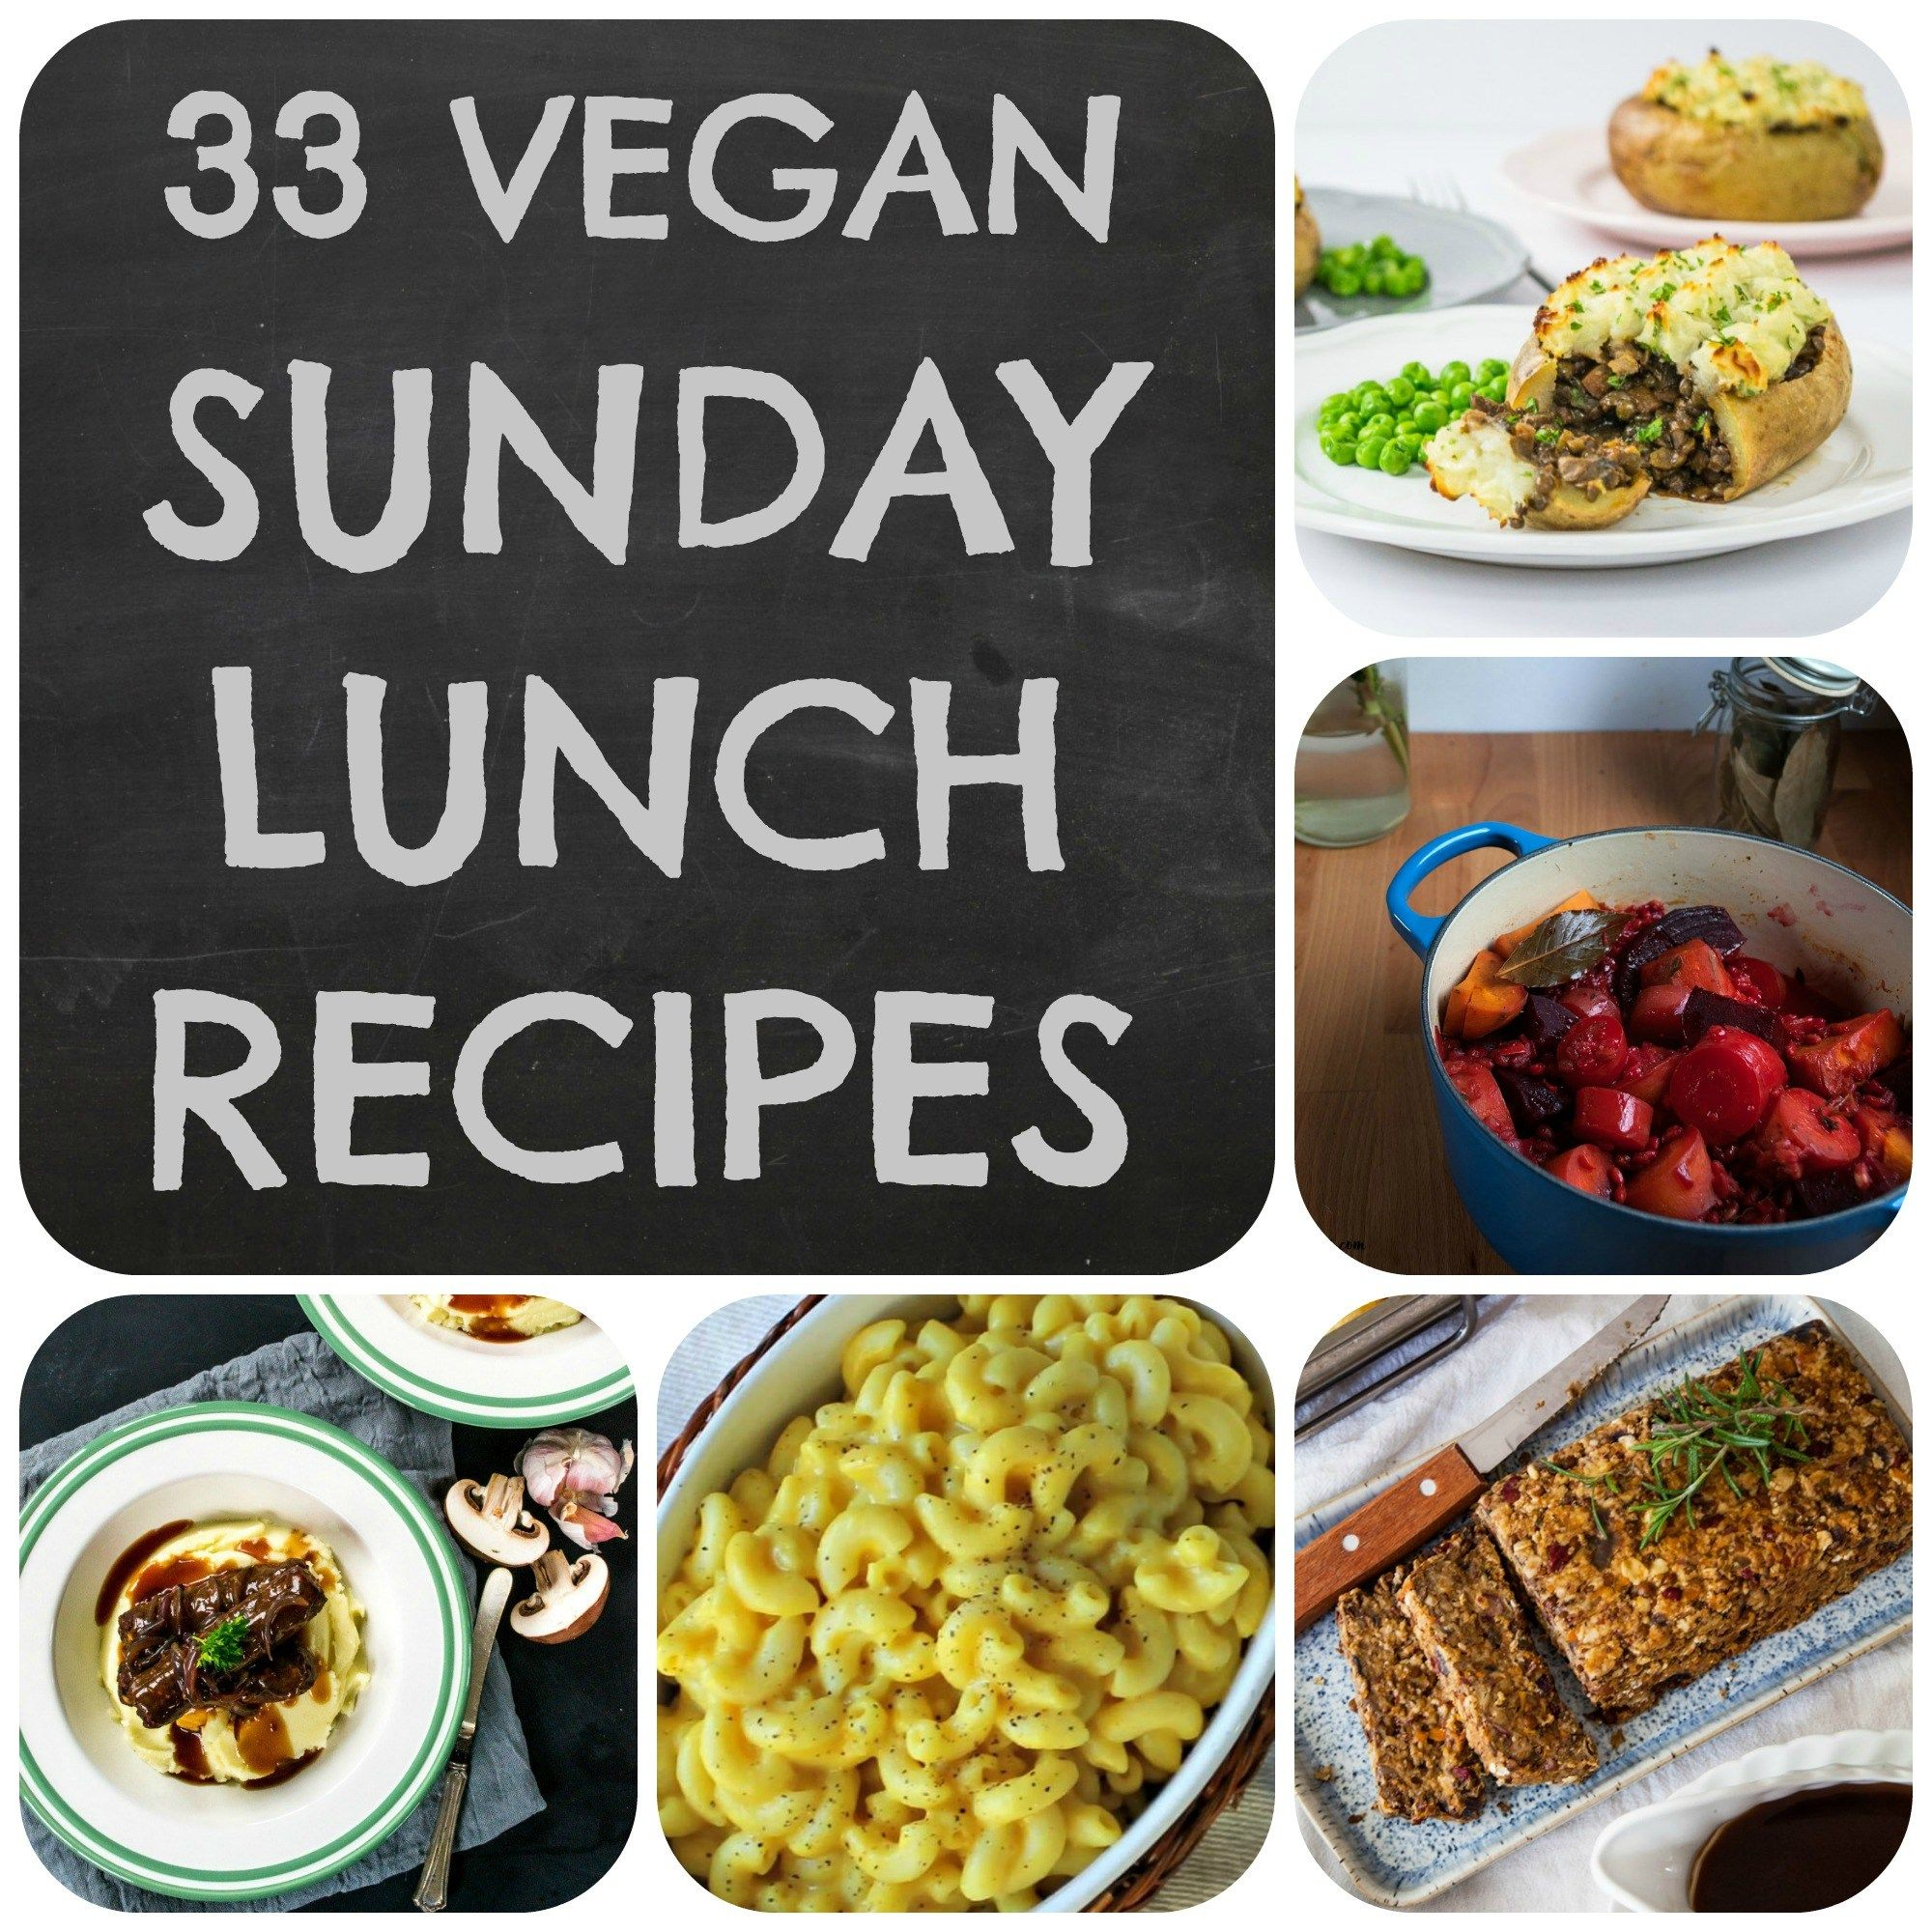 Vegan Sunday Lunch Ideas Lunch Recipes Vegan Sunday Lunch